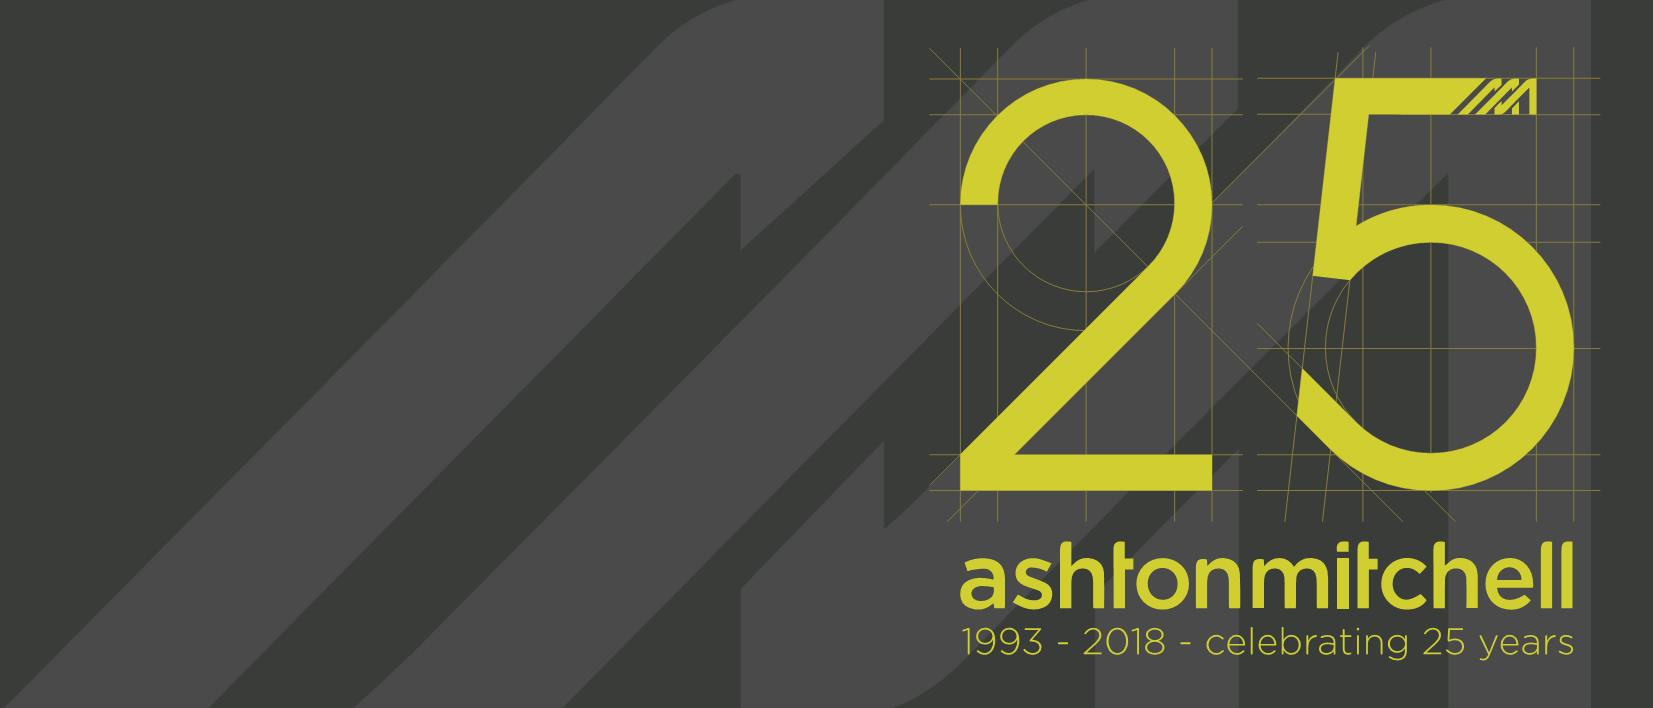 Ashton Mitchell 25th Anniversary Celebration